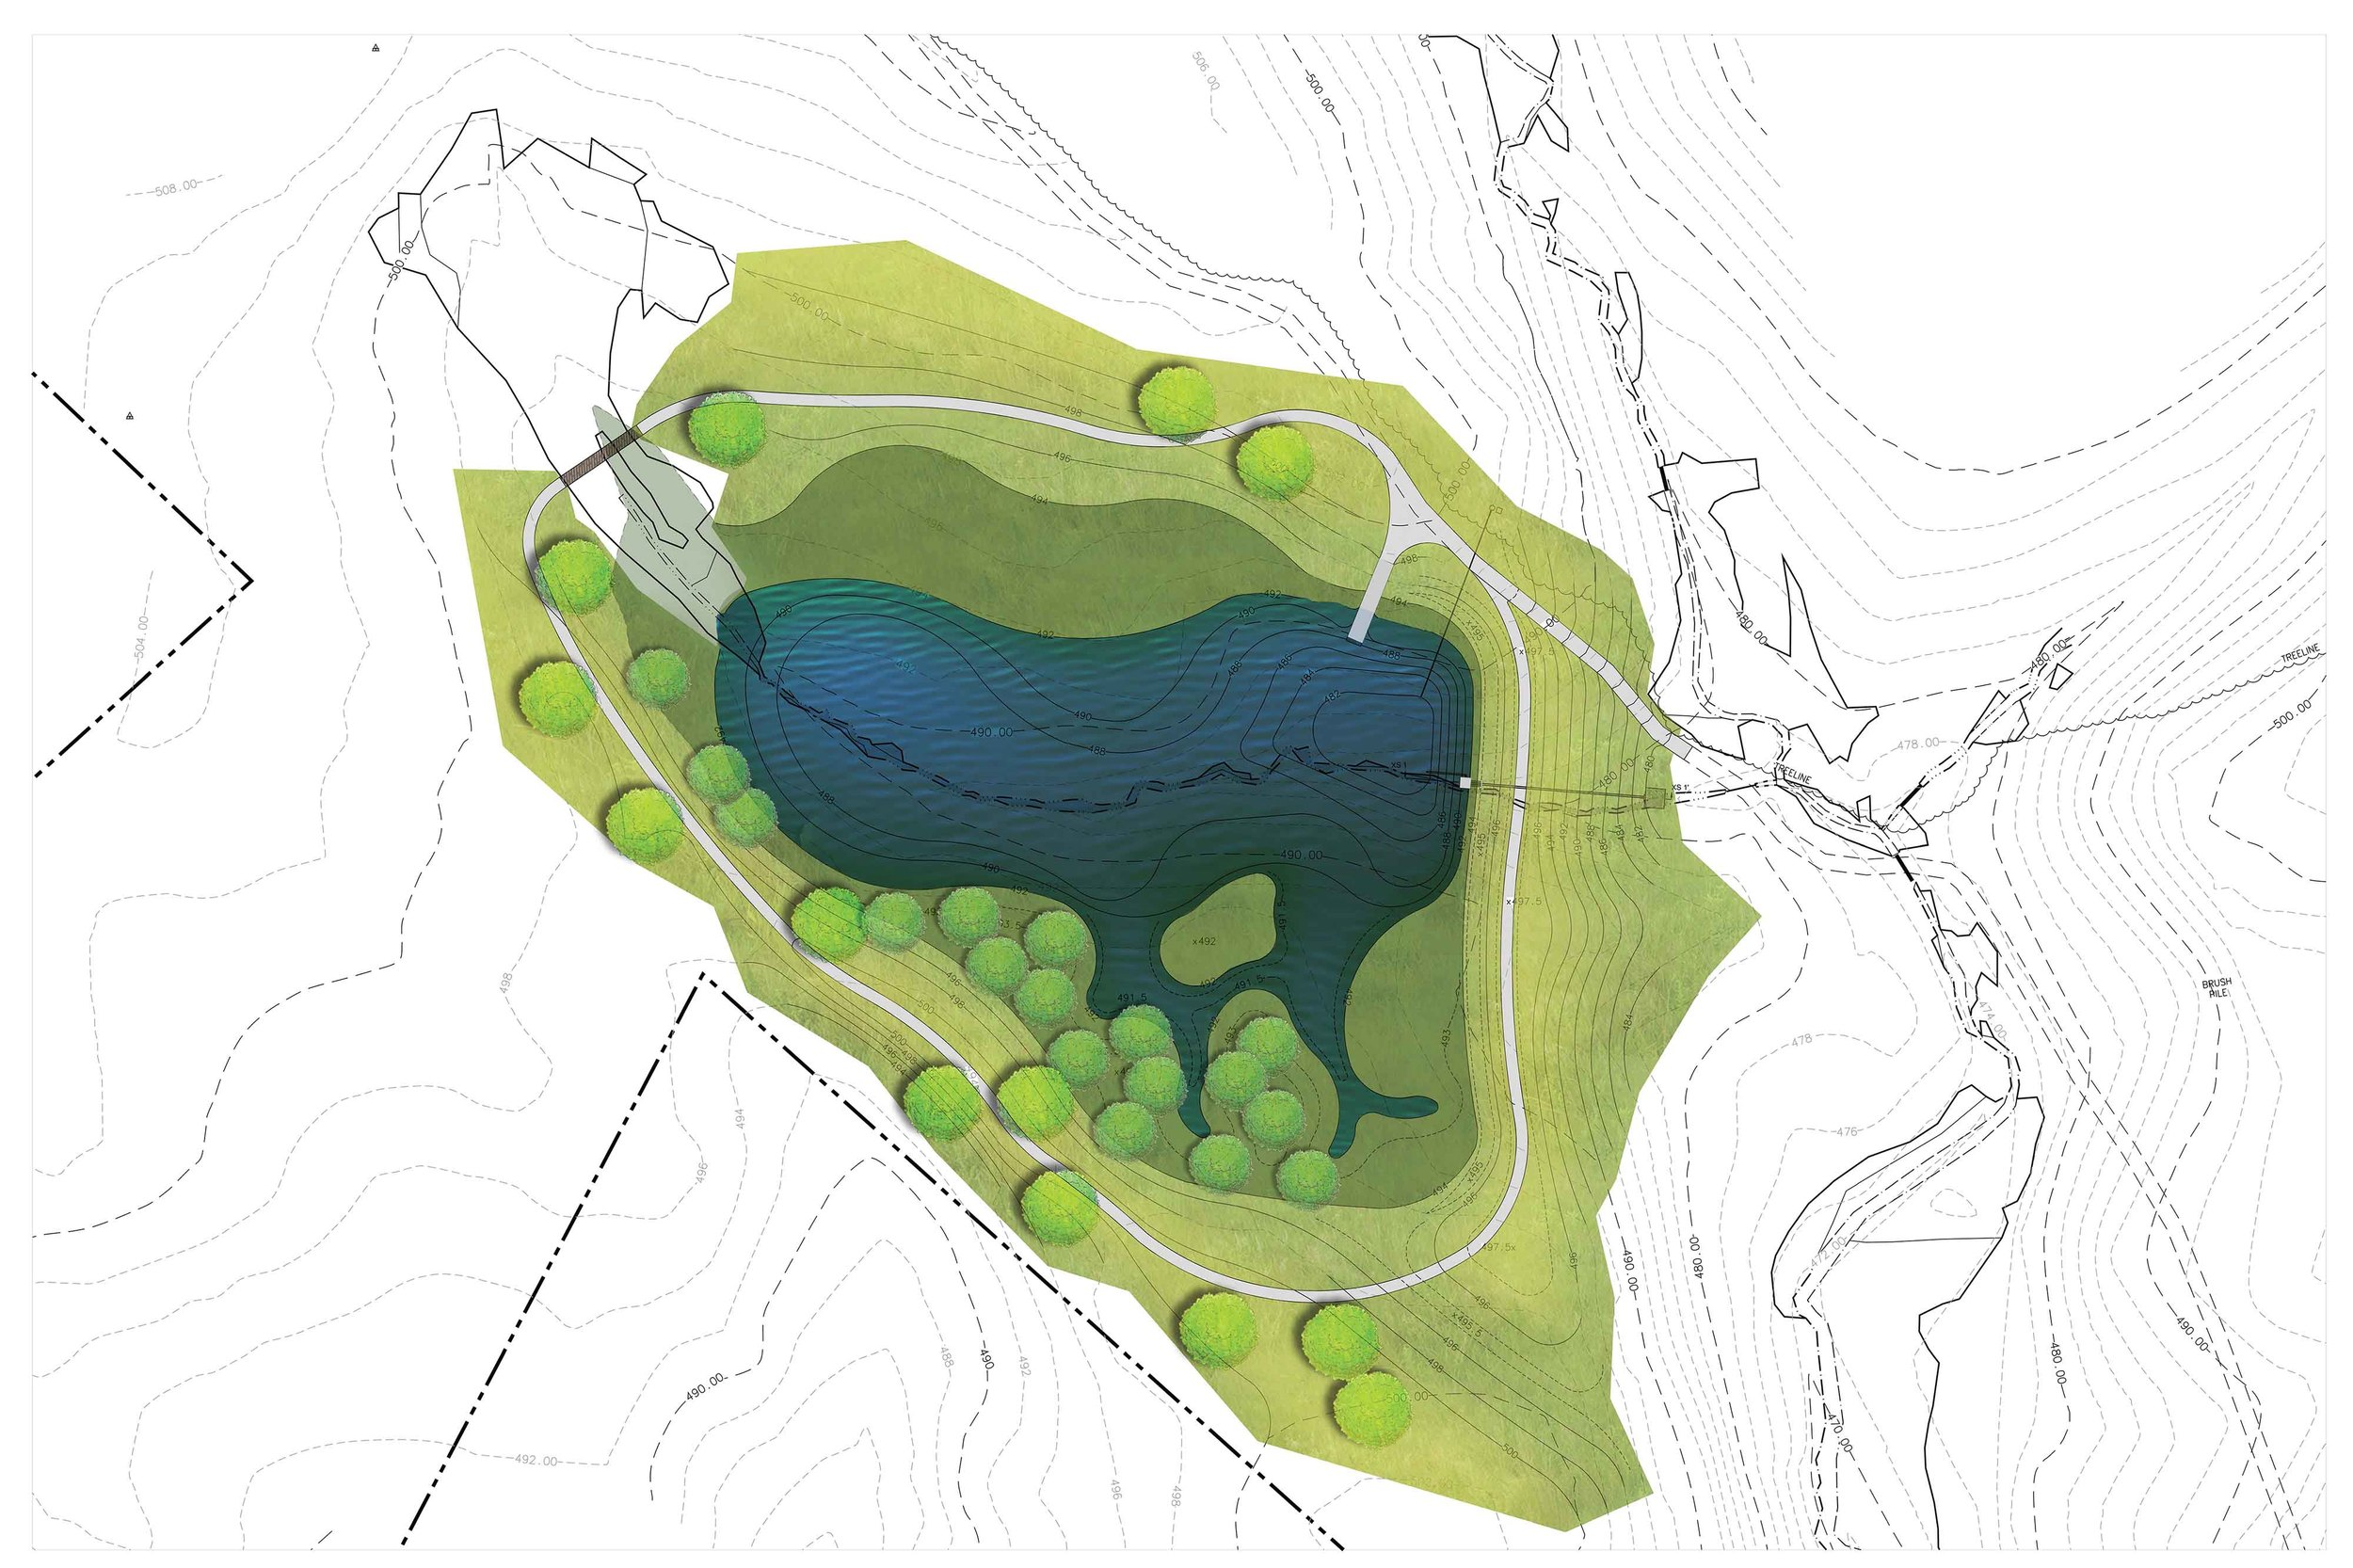 Canterbury – Plan rendering of a private pond and wetland system designed by WSSI